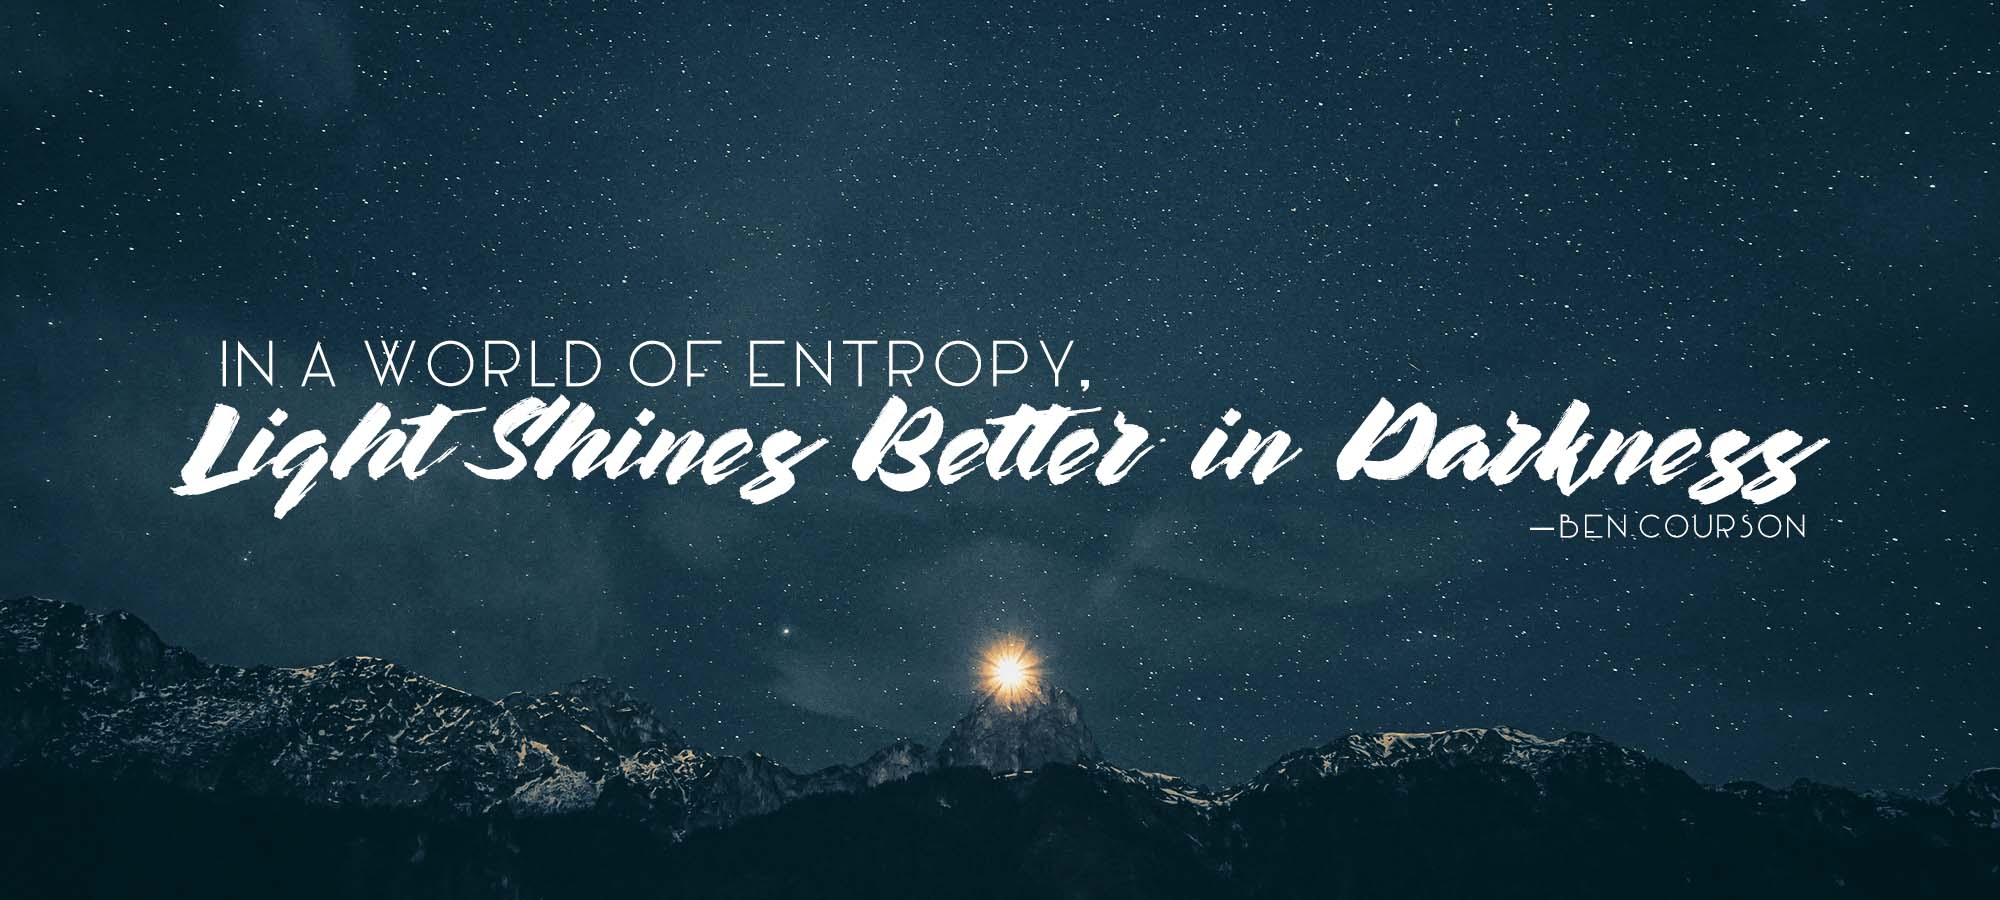 In a World of Entropy, Light Shines Better in Darkness